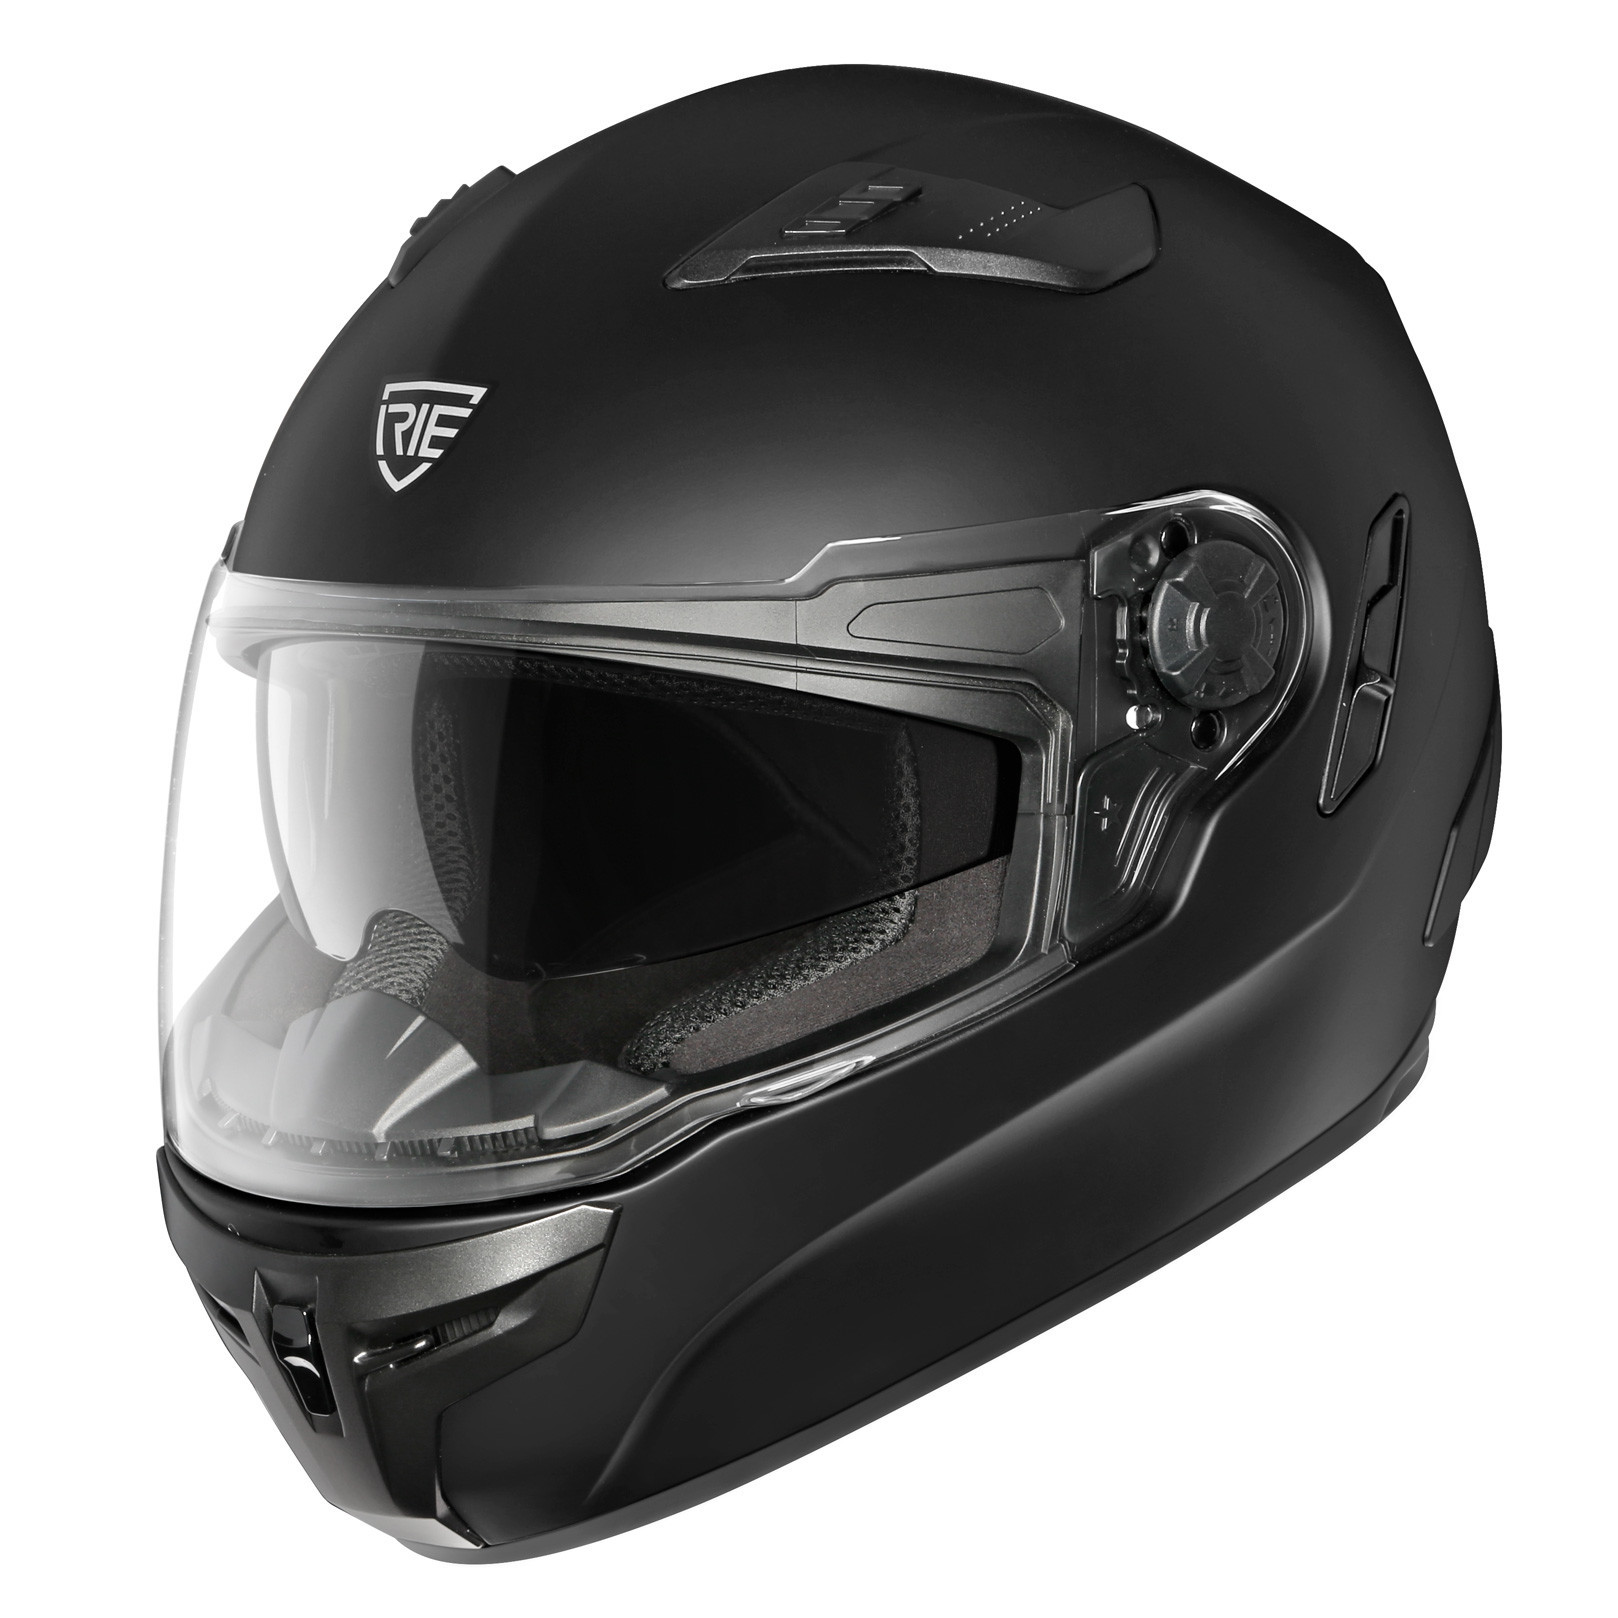 Sfida, casco integrale - Nero Opaco - XL